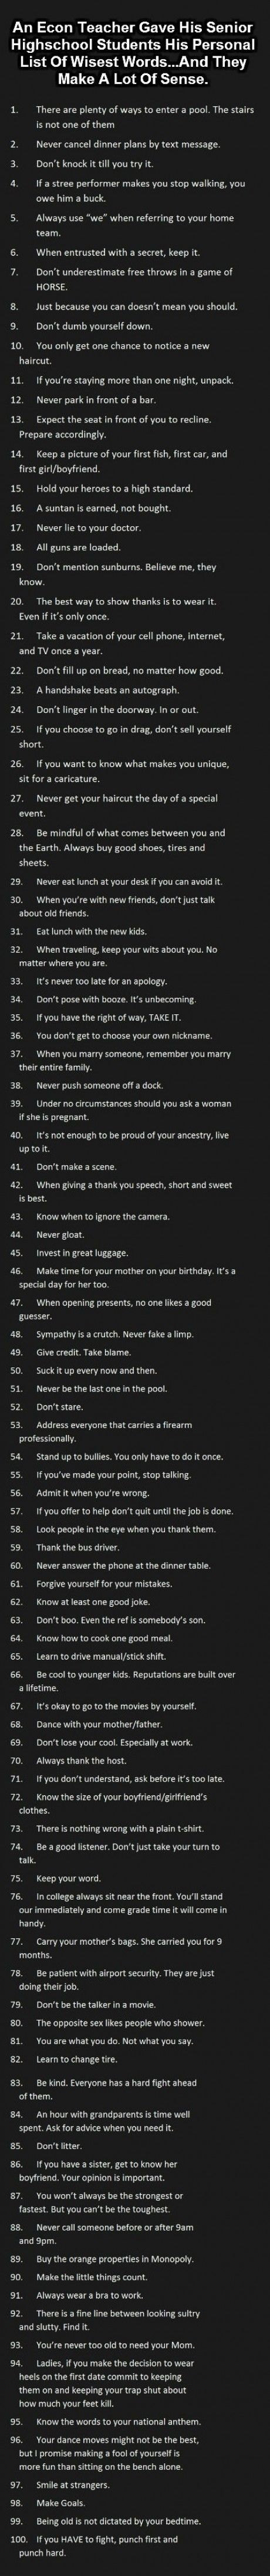 An Econ Teacher Gave His Senior High School Students His Personal List Of Wisest Words